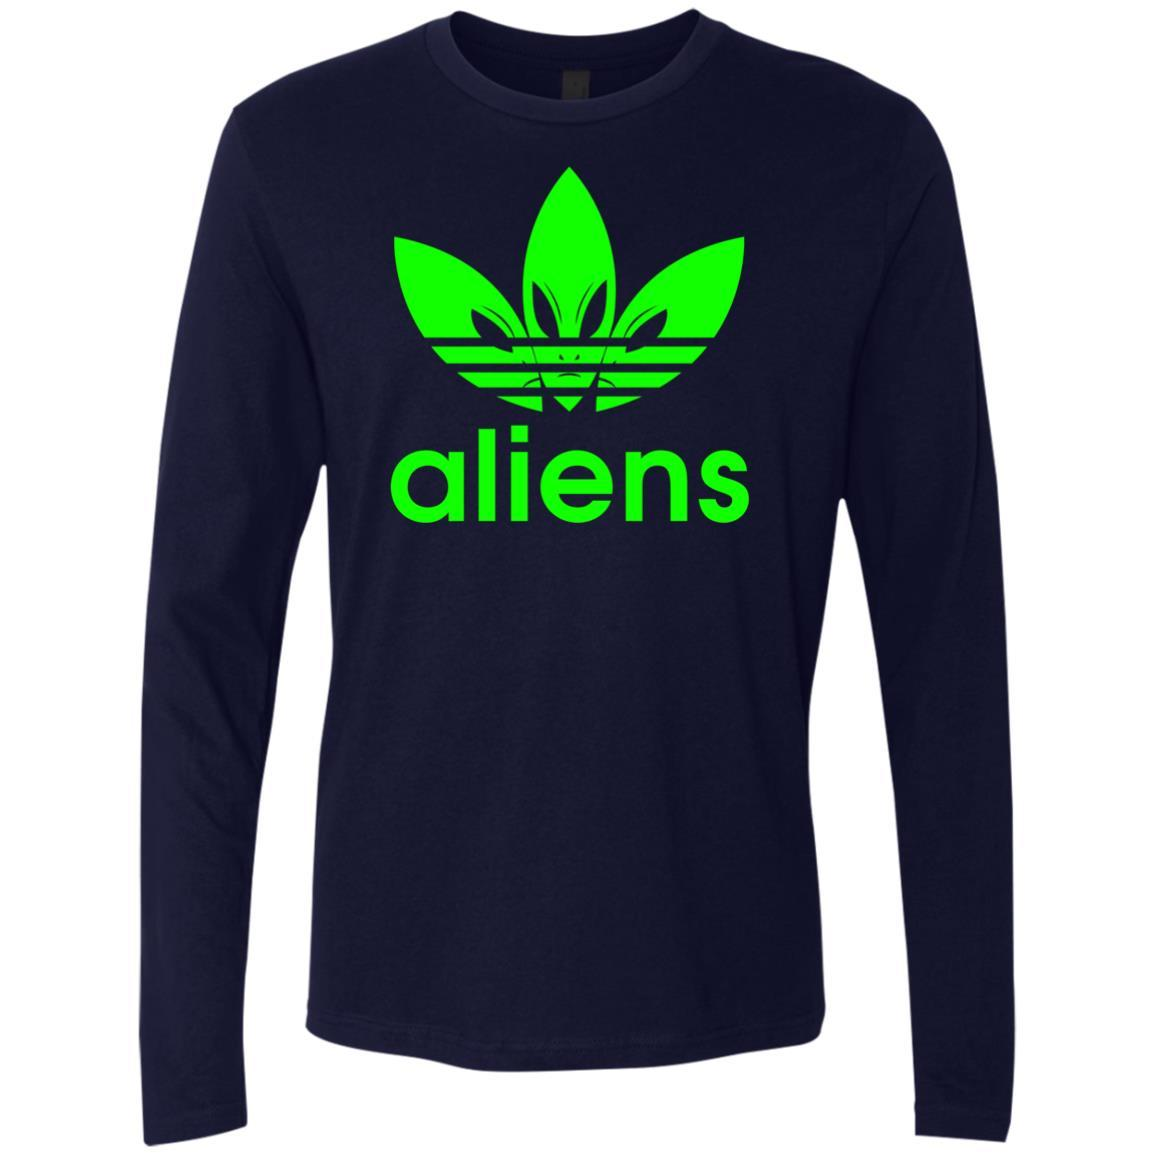 T-Shirts - Green Aliens (not Adidas) Premium Long Sleeve